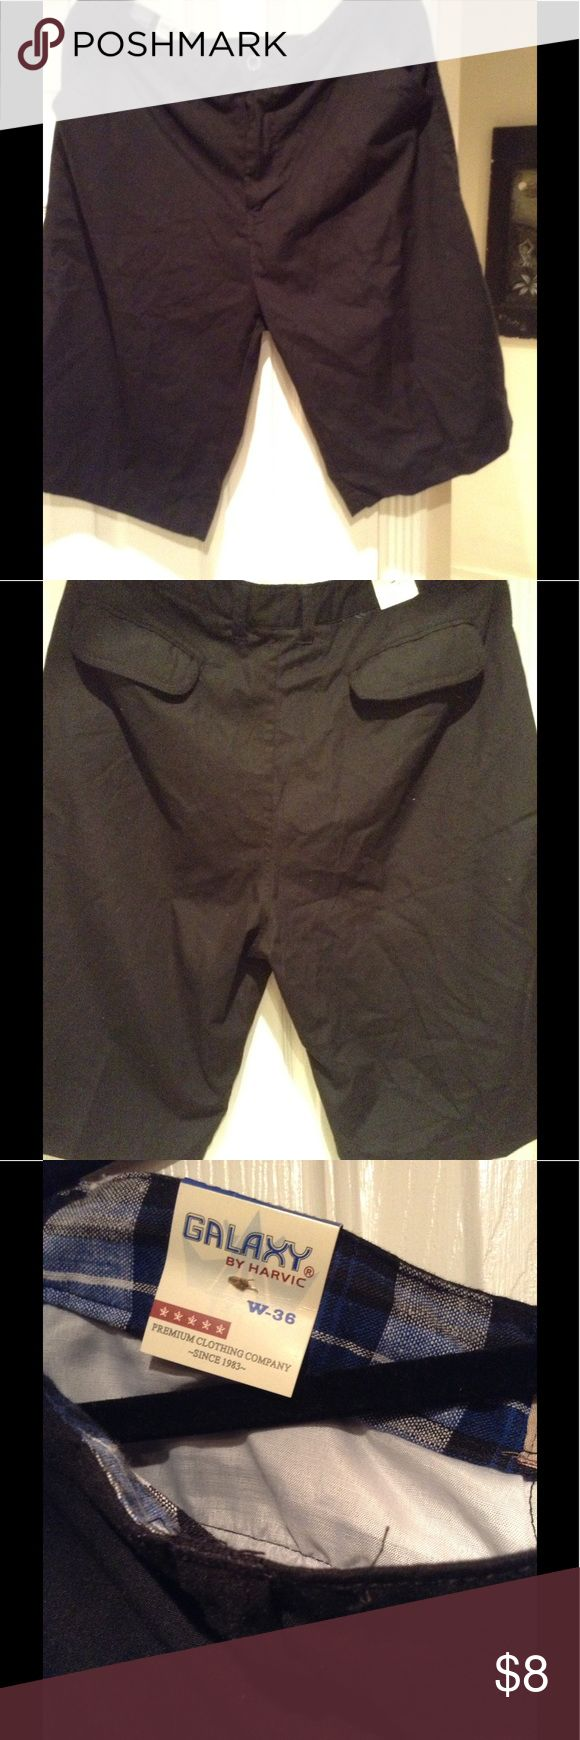 Men's chino shorts by Galaxy NWT Brand new with tags men's black walking shorts. Flap back pockets. My husband received as a gift. Wrong size. galaxy Shorts